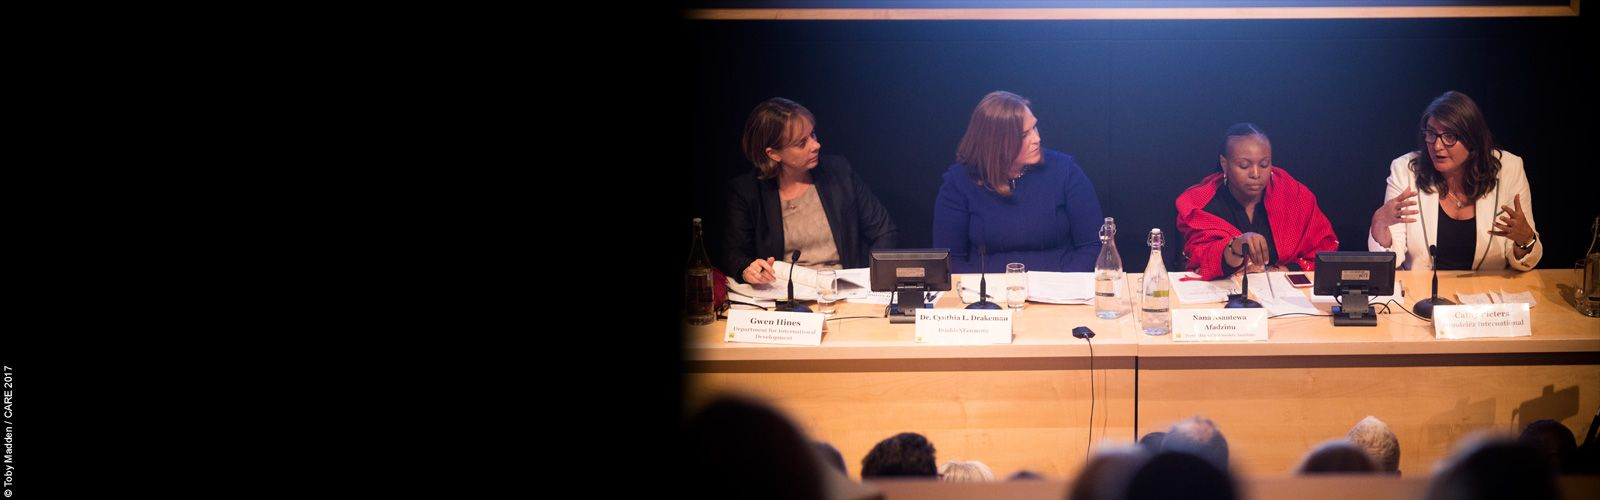 Panel at Empowering women in the economy event